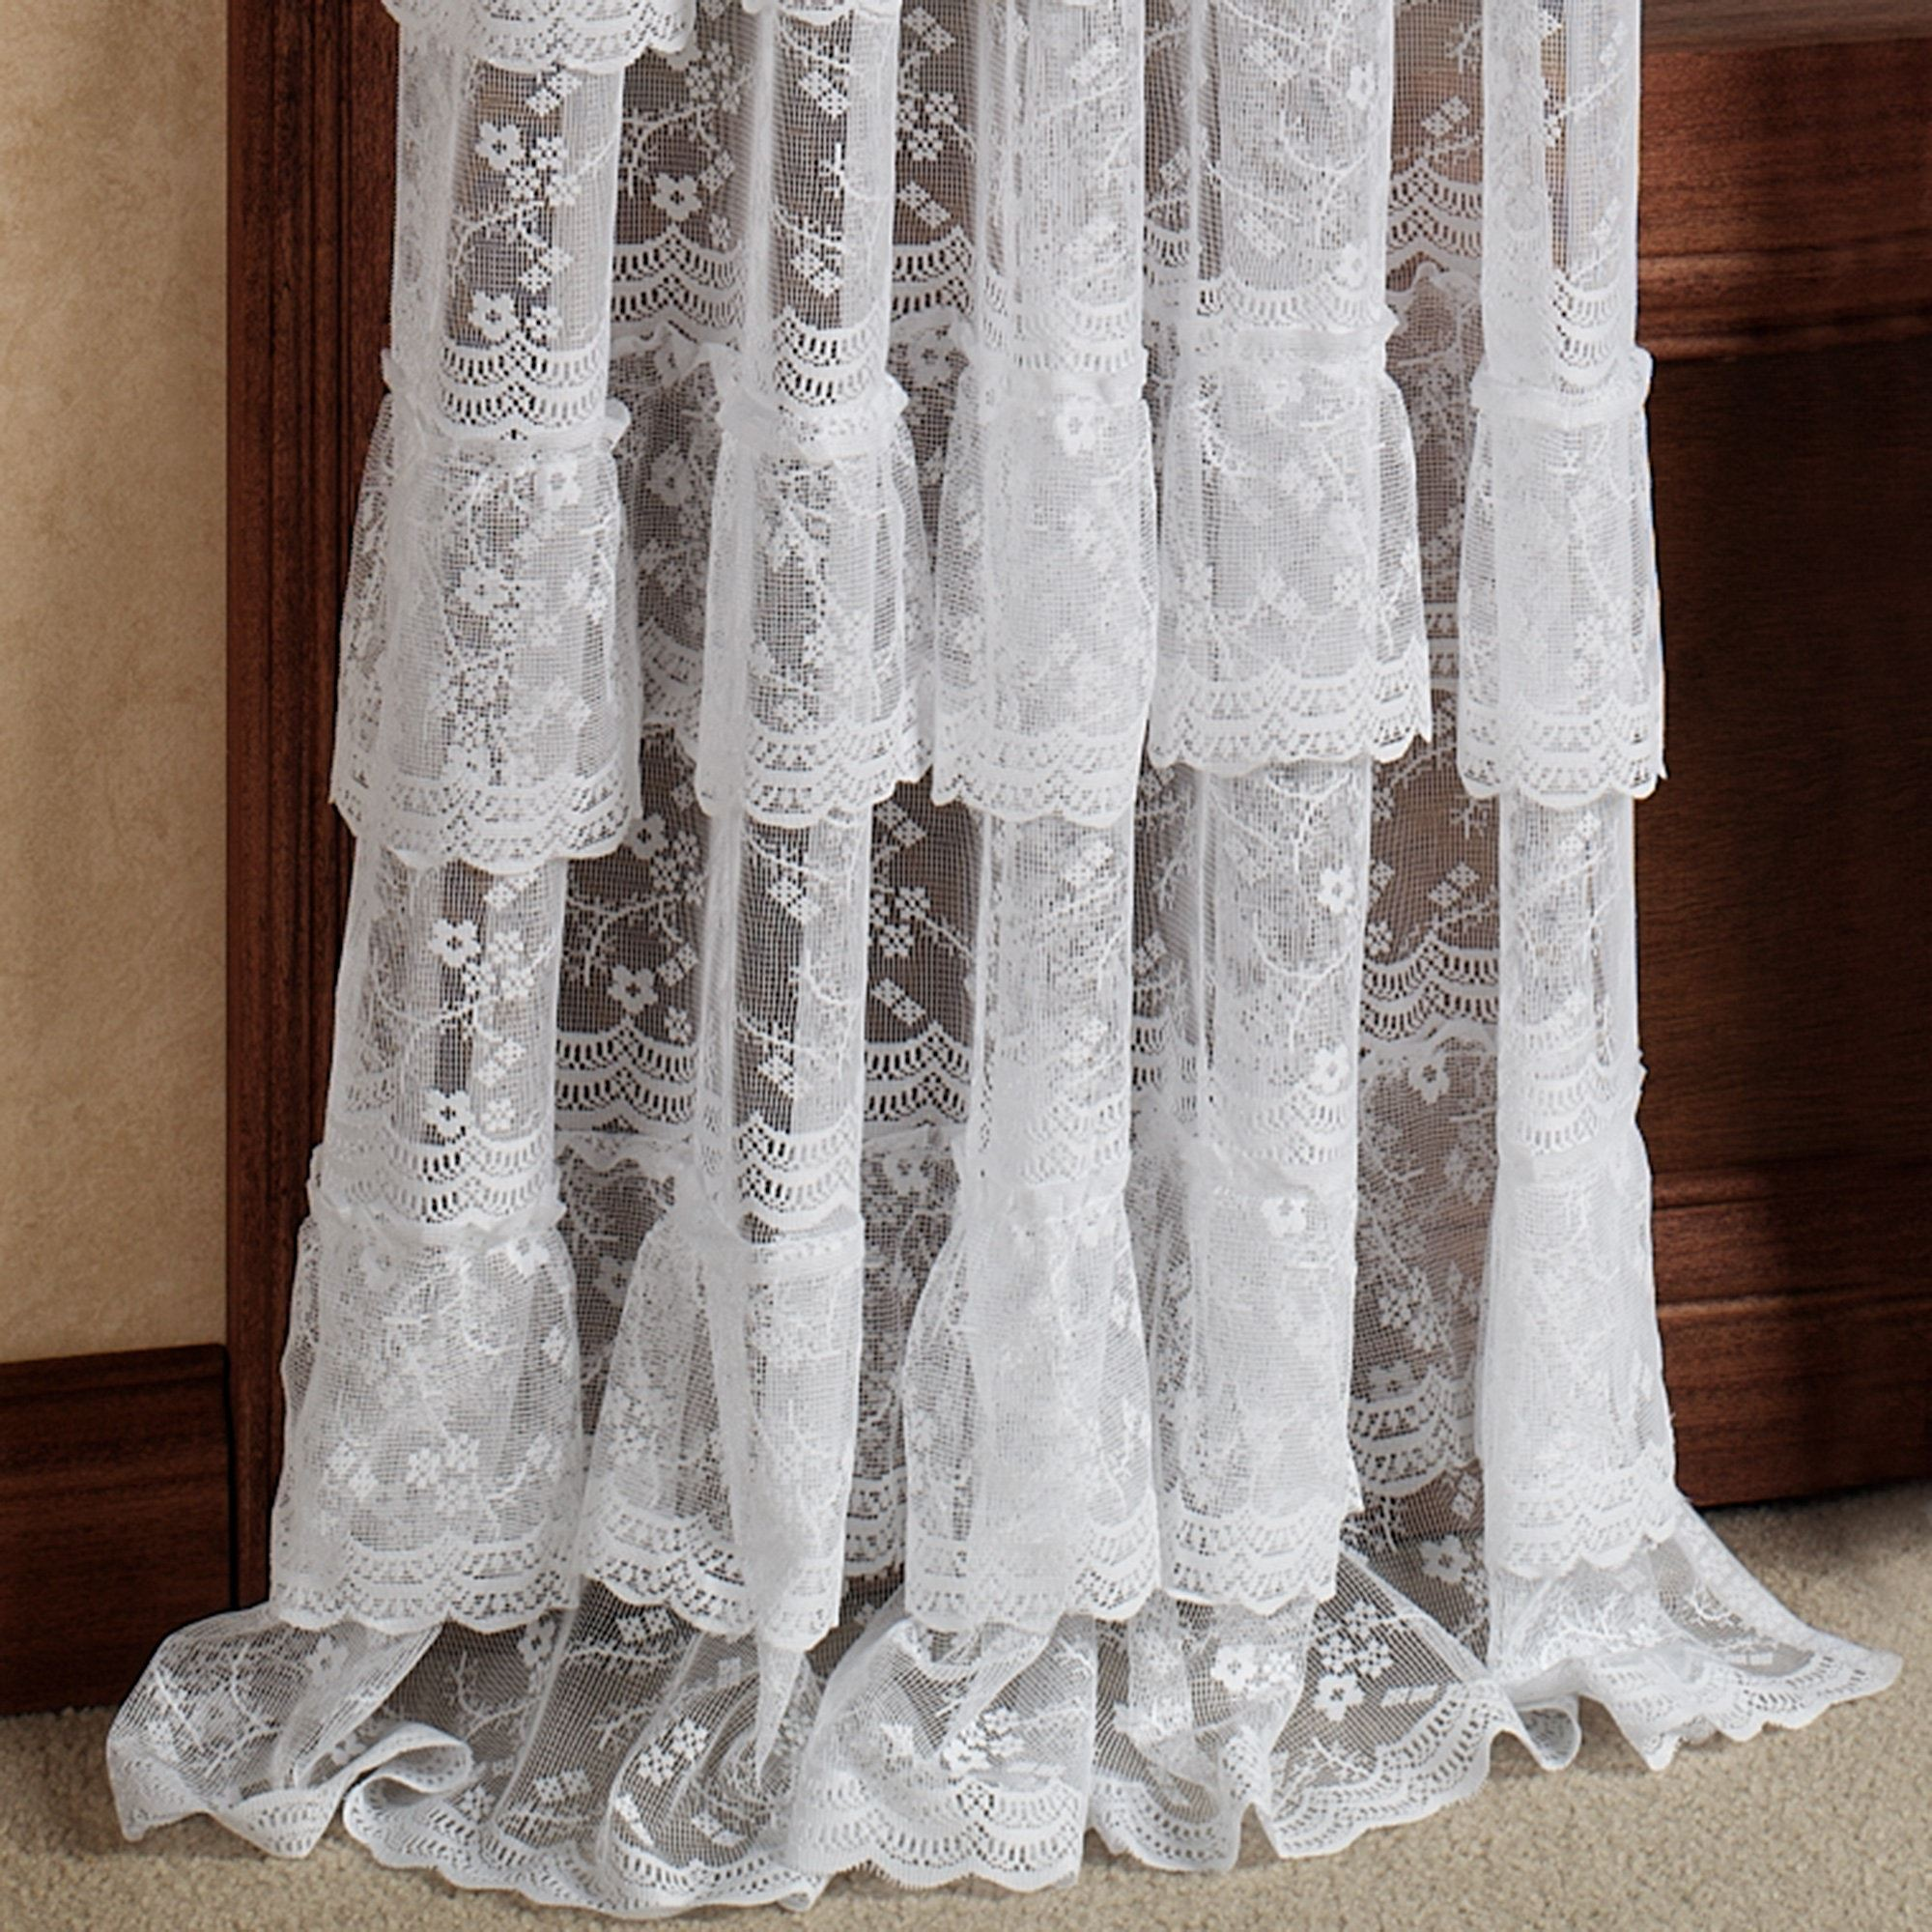 Ruffle Curtain Panel Bridal Lace Layered Ruffled Curtain Panel